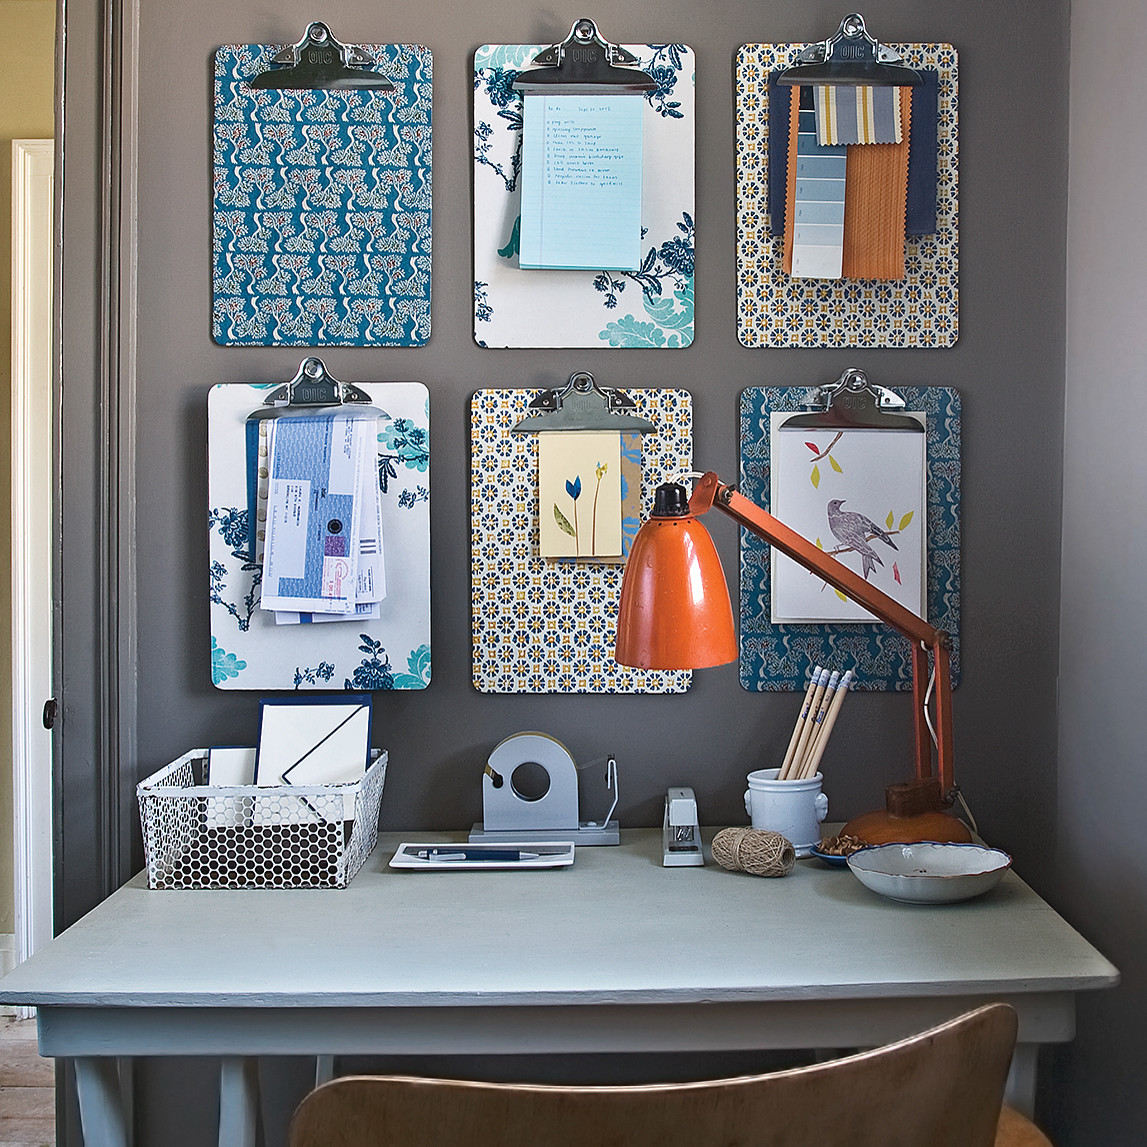 6 Ideas On How To Display Your Home Accessories: Office Organization Ideas For Disaster-Zone Desks